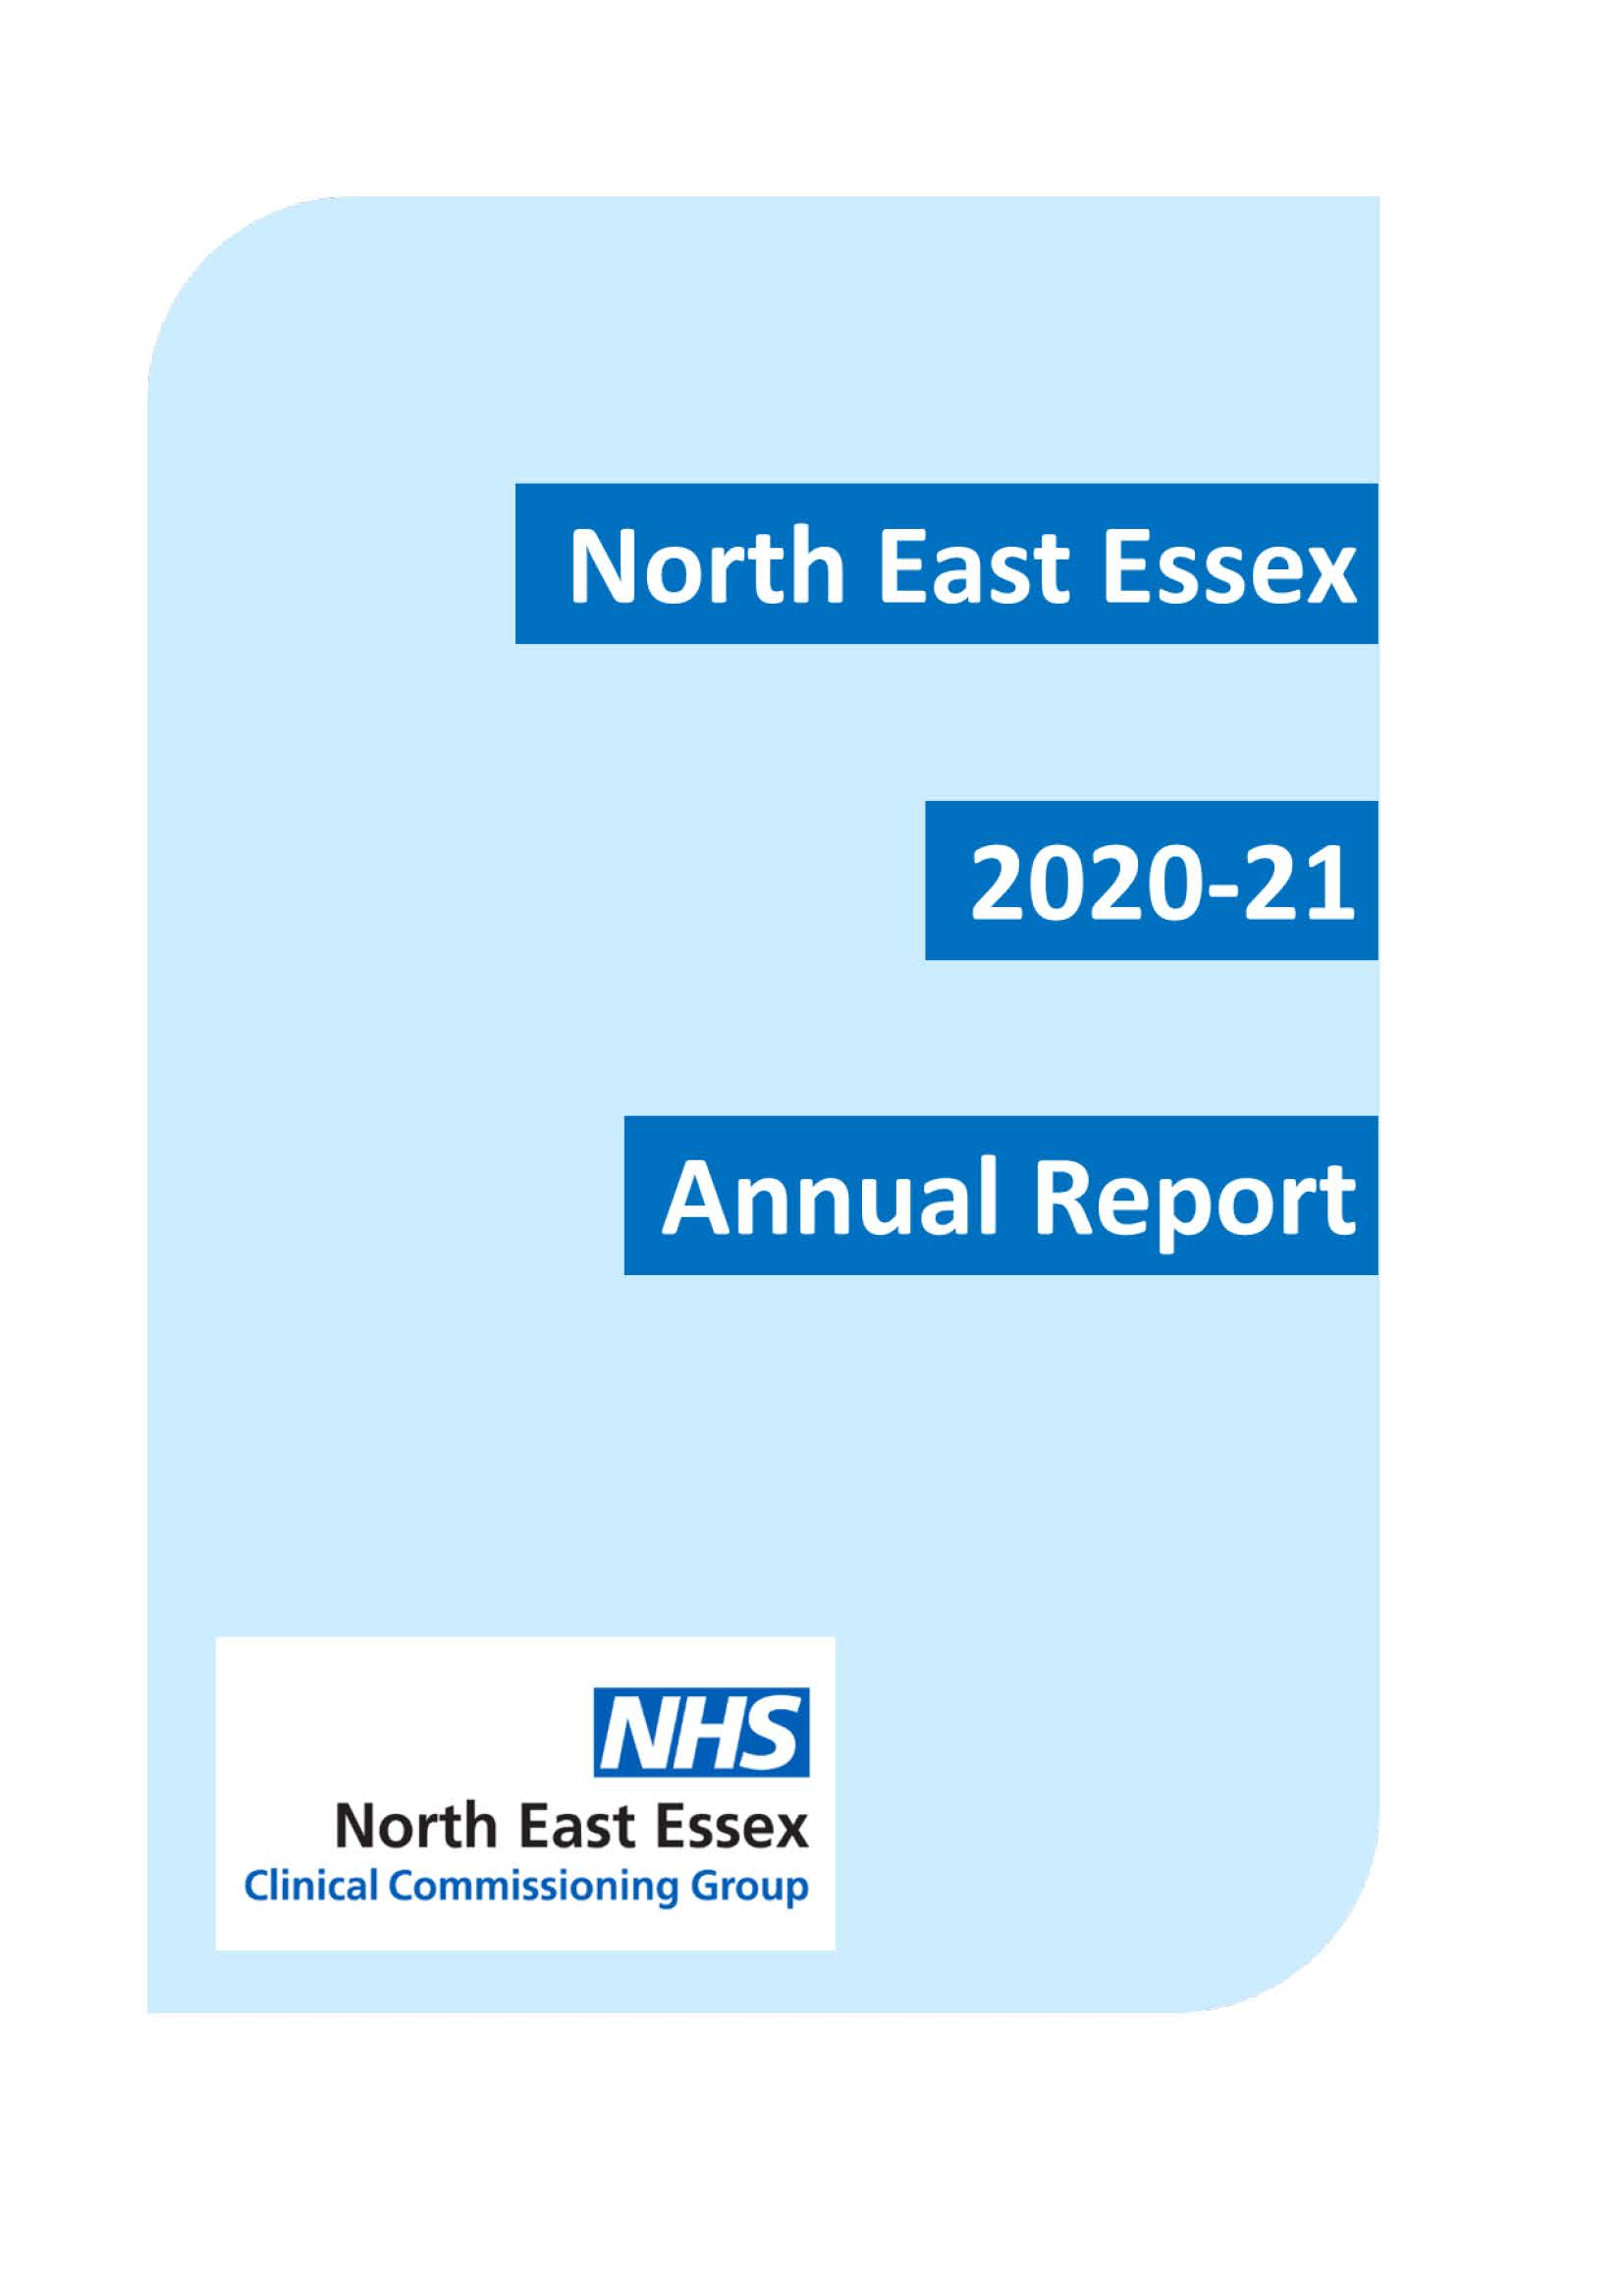 front cover of the 20/21 Annual Report